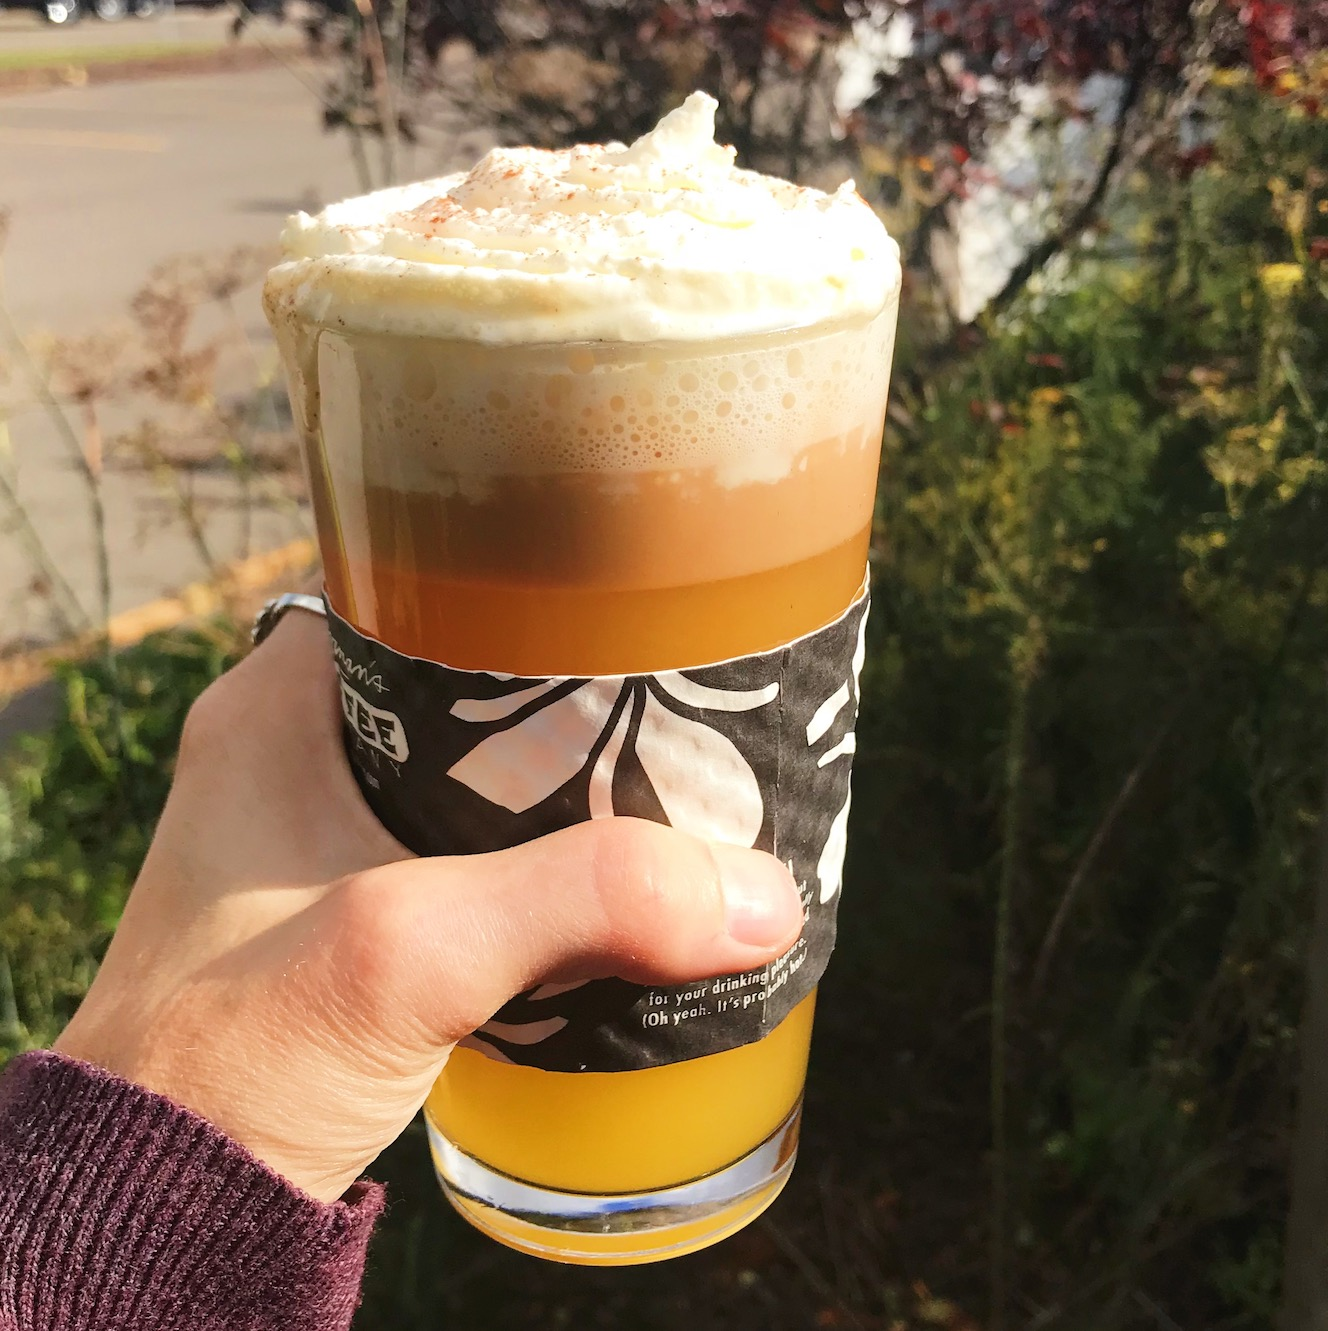 A pint of Caramel Apple Cider with whipped cream on top.